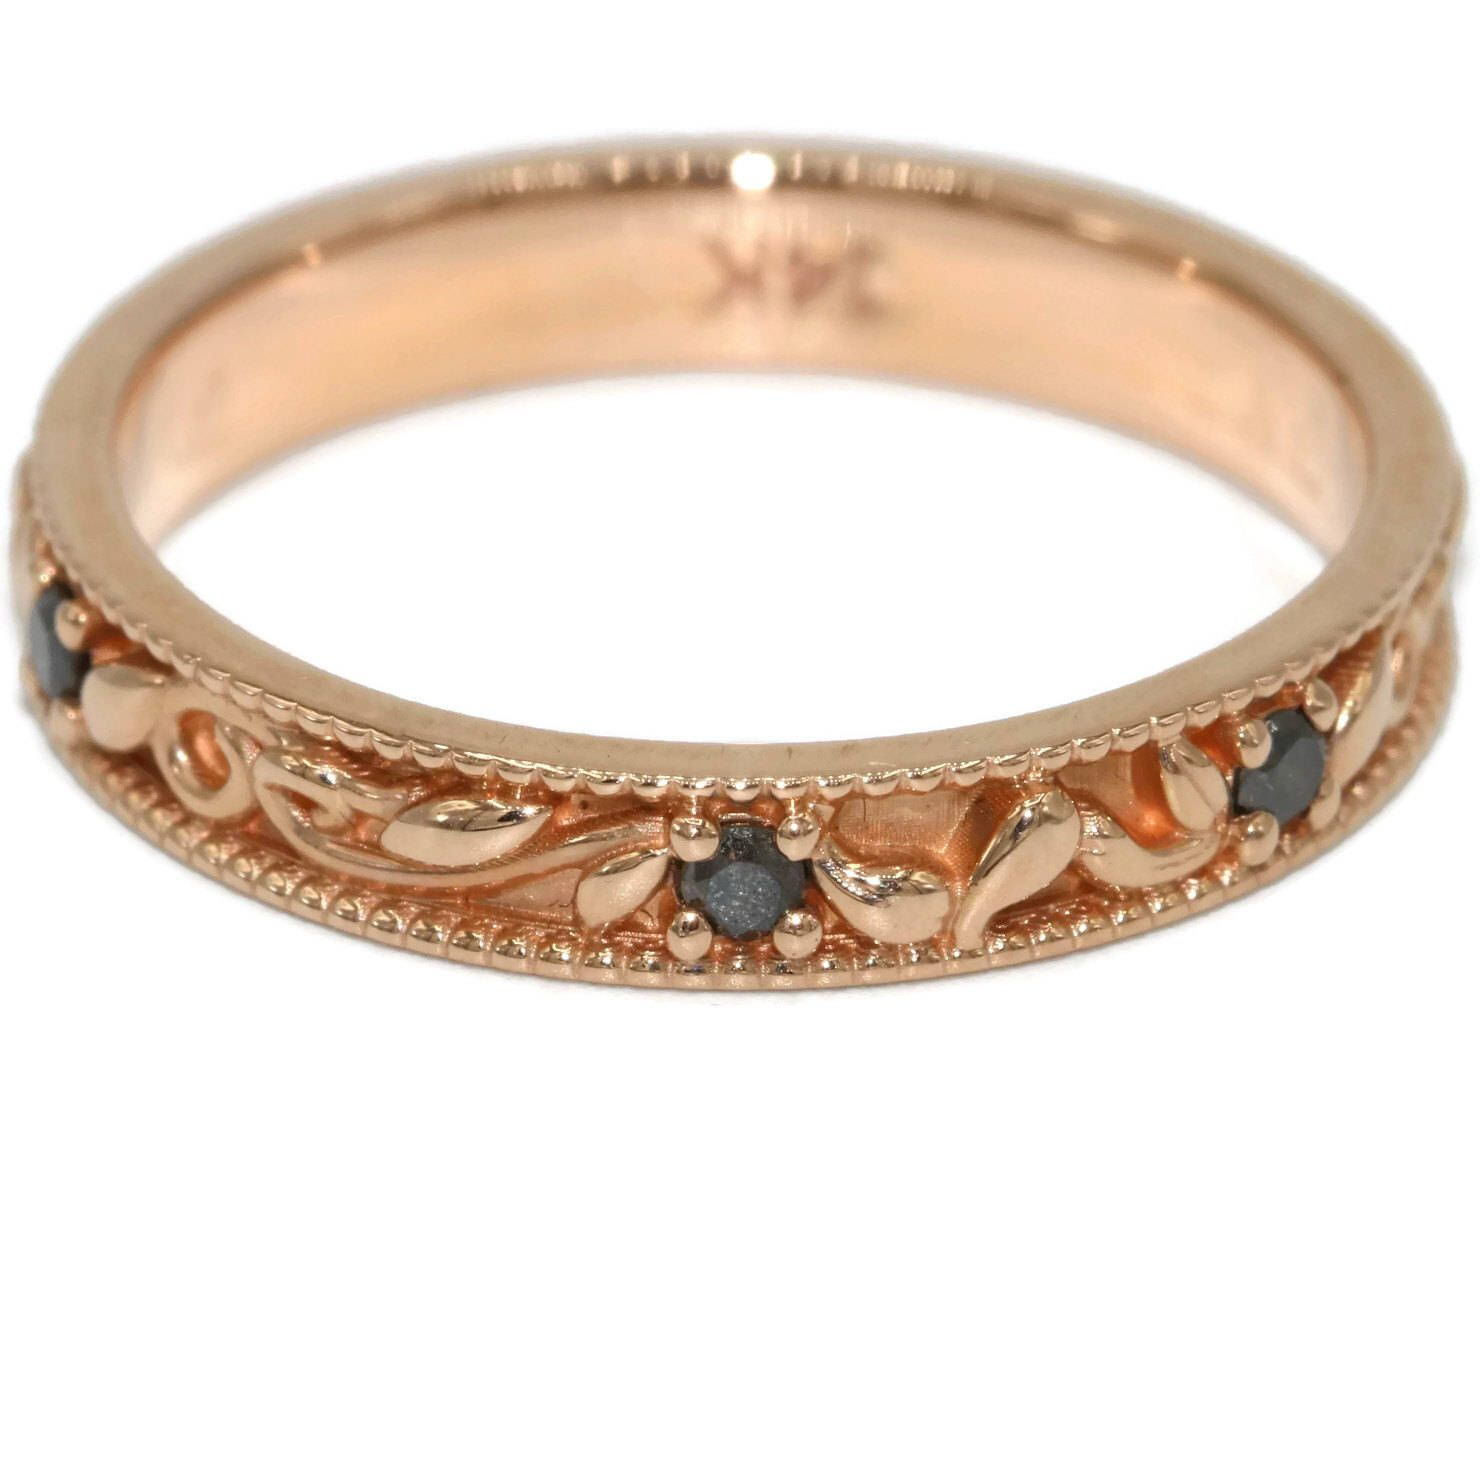 Wedding eternity Ring Whimsical filigree bands Rose Gold and